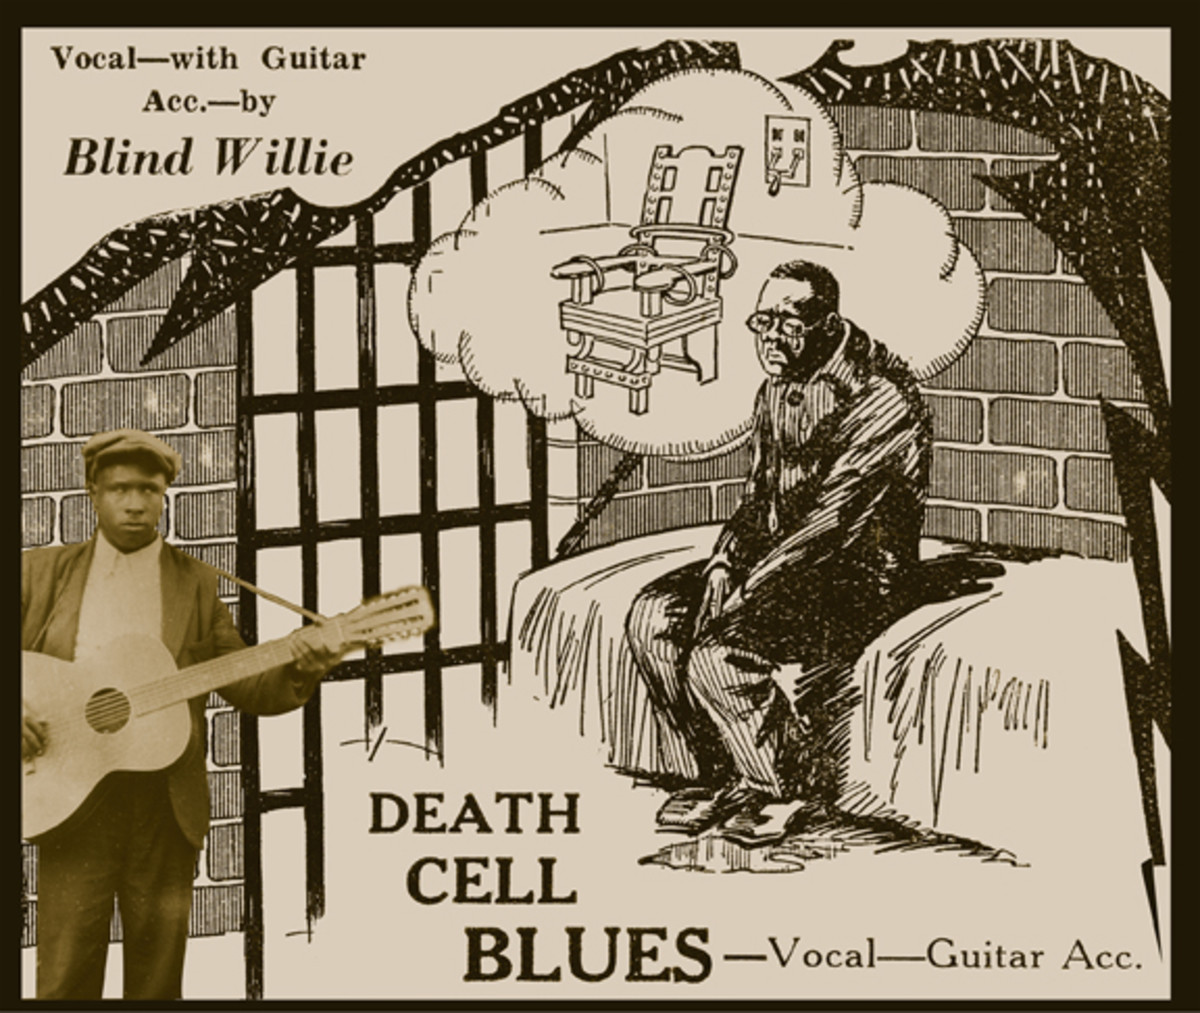 Blind Willie McTell Death Cell Blues